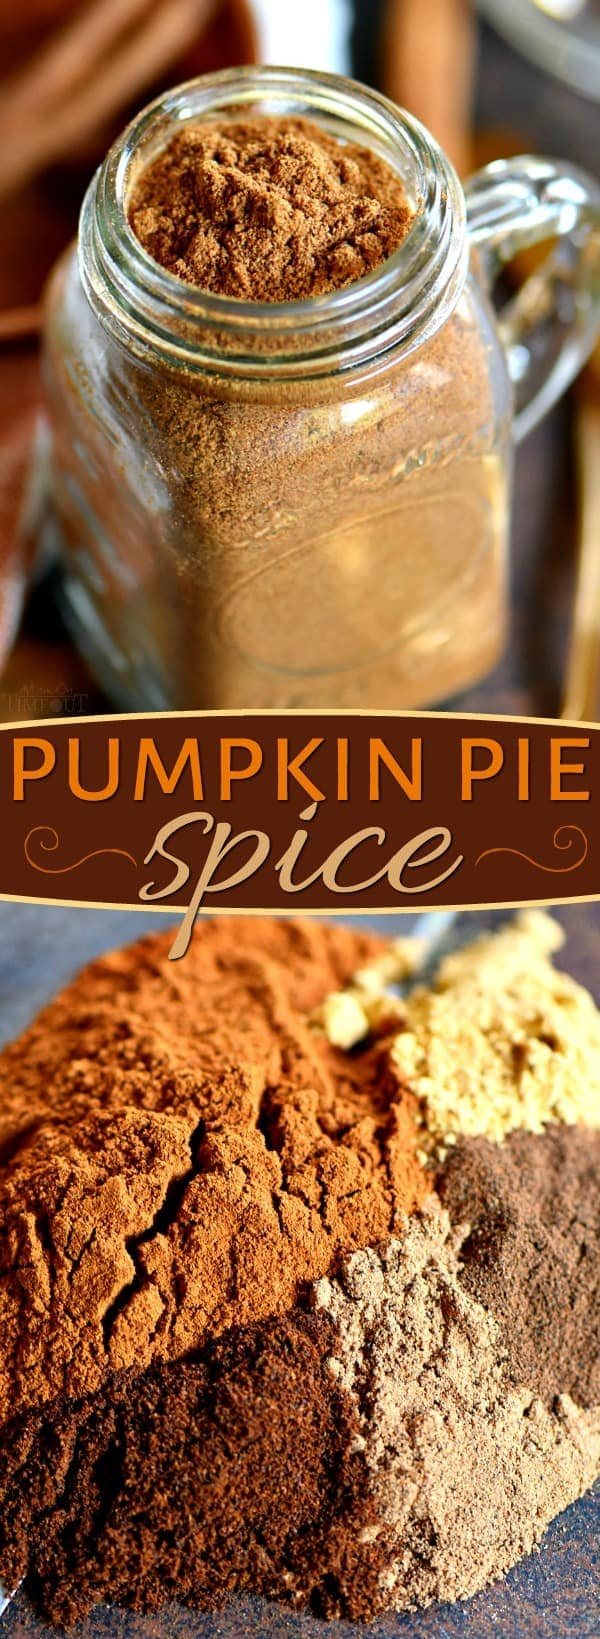 easy-pumpkin-pie-spice-recipe